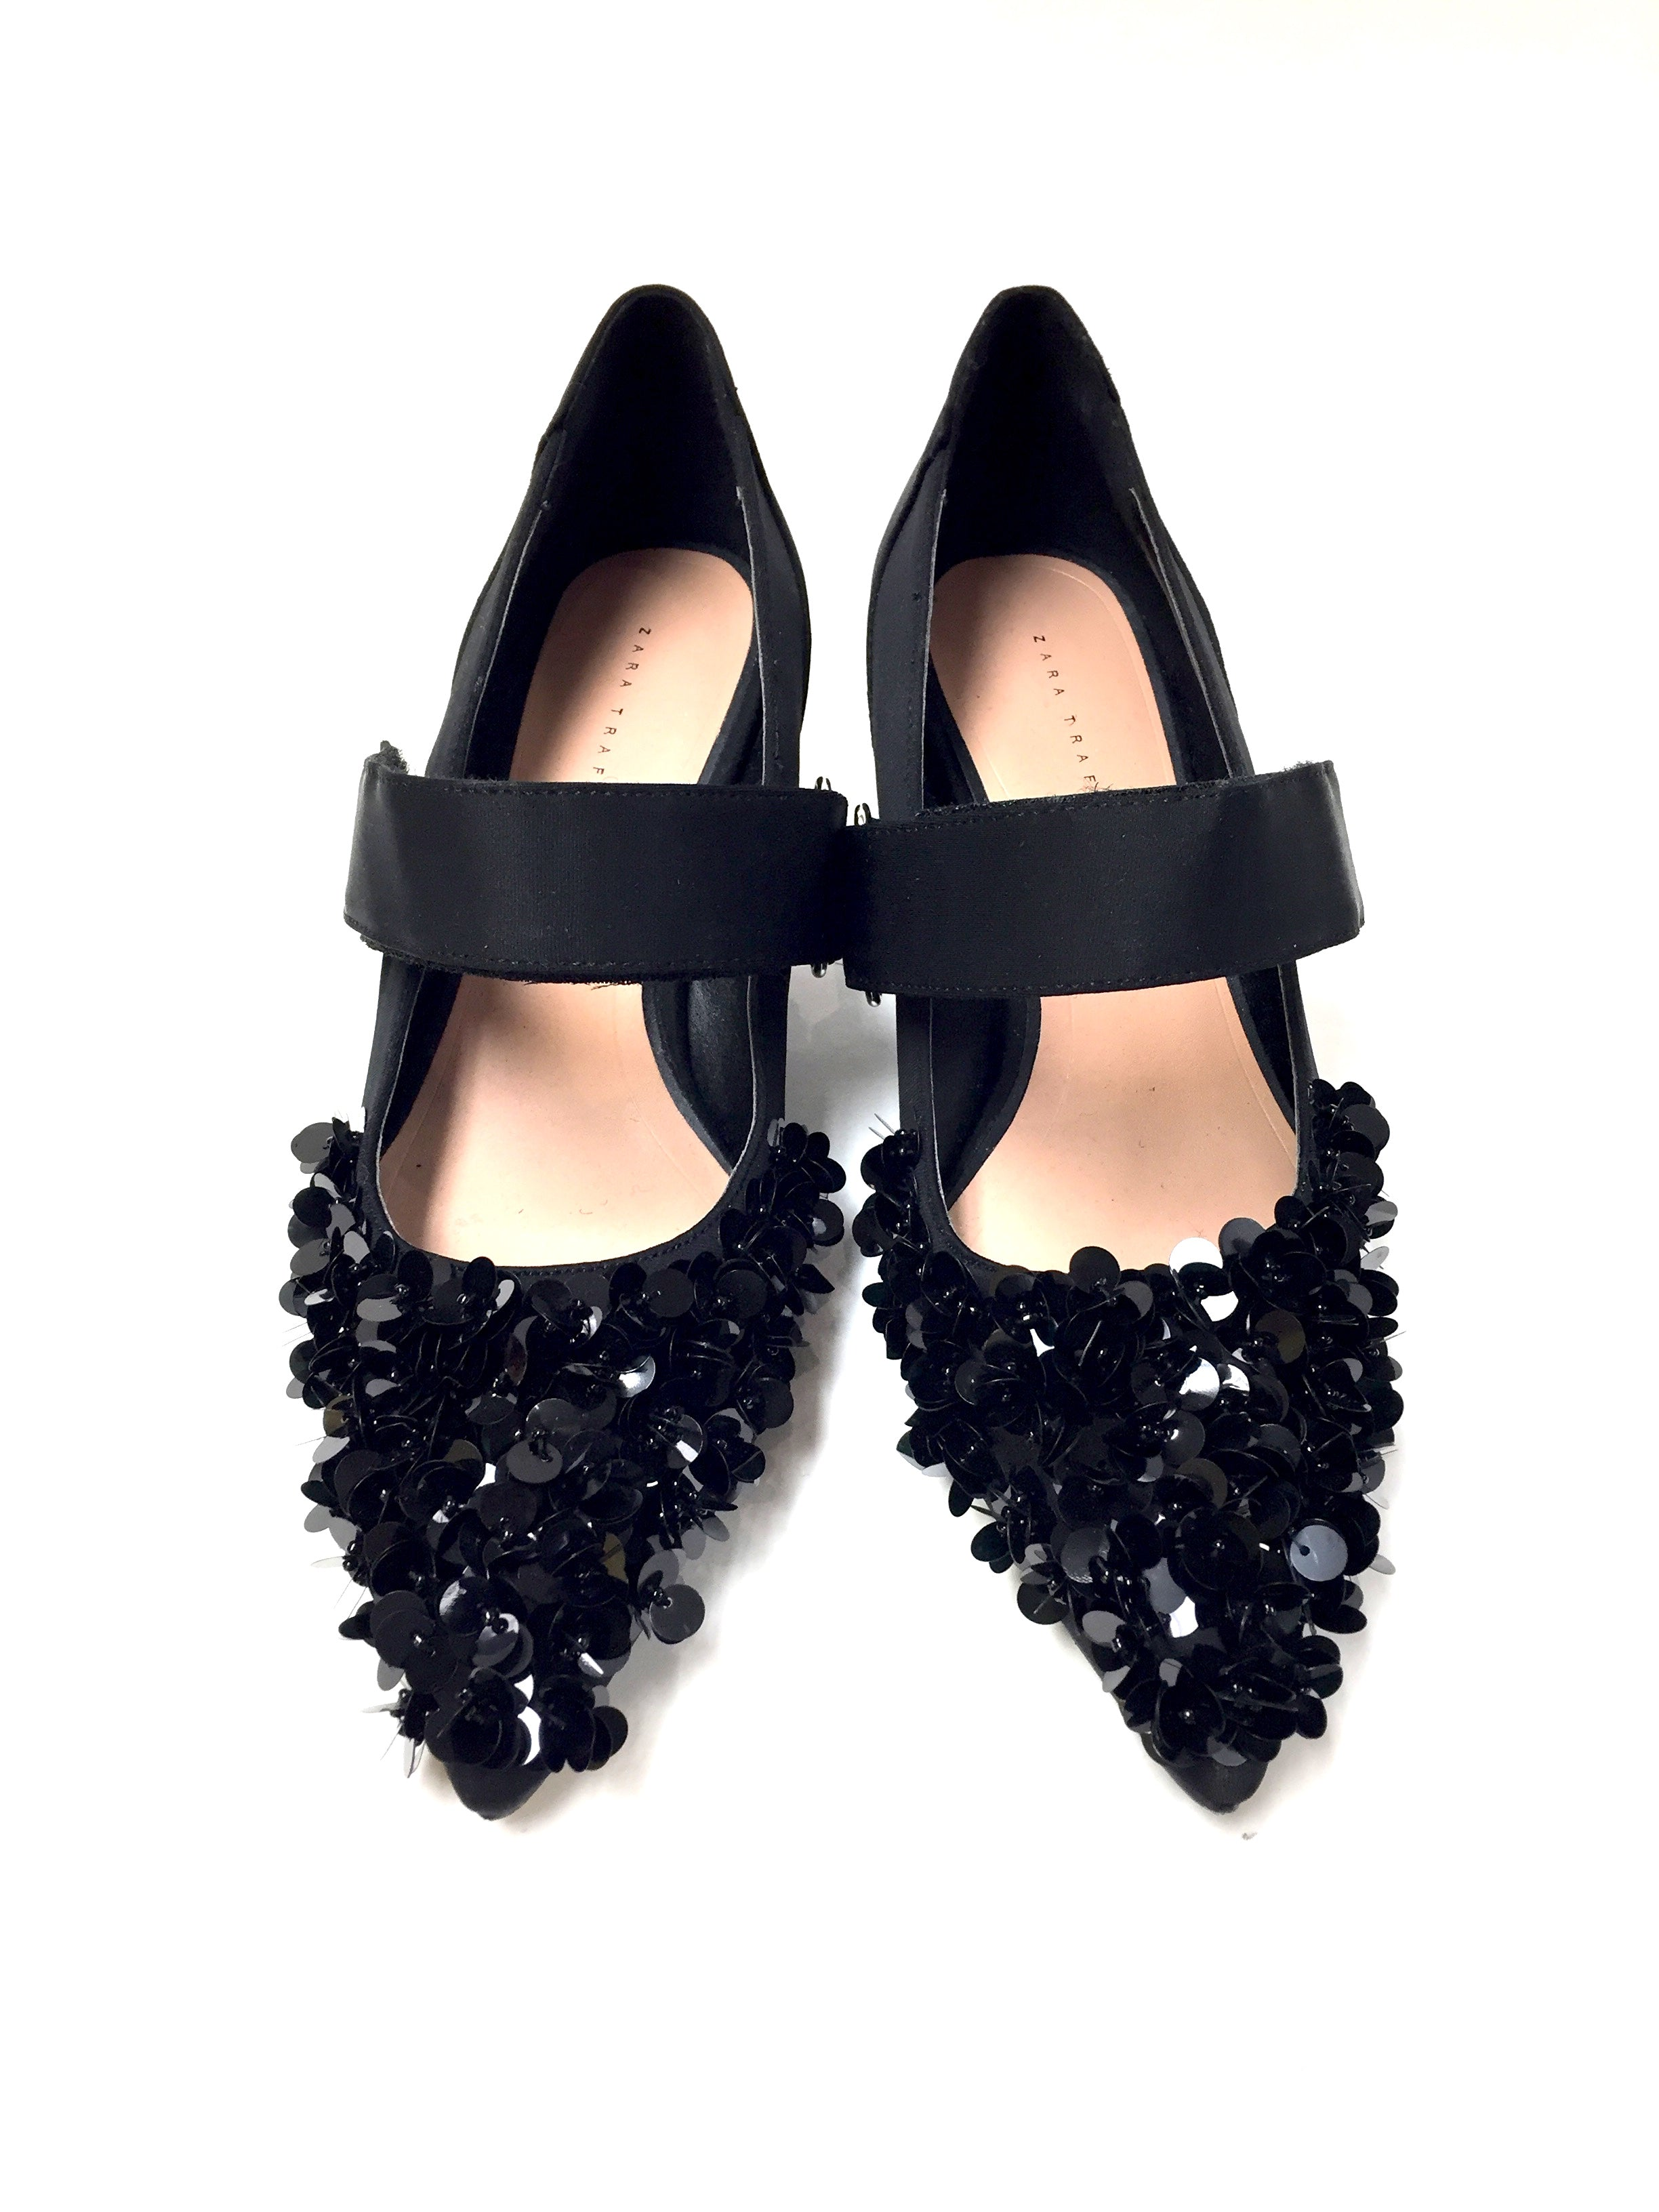 1a2083612c90 ZARA TRAFALUC Black Sequined Satin Canvas Kitten-Heel Mary Jane Pumps Shoes  Size  EU 37   7